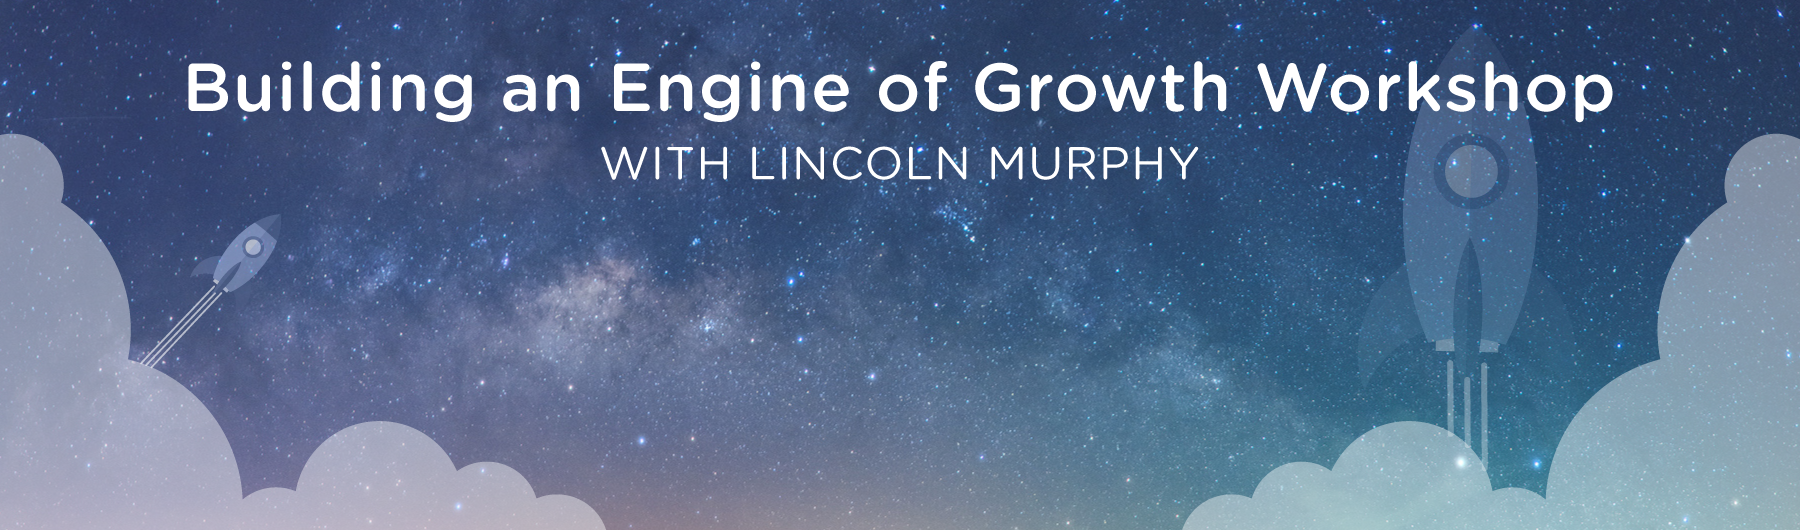 Building an Engine of Growth Workshop